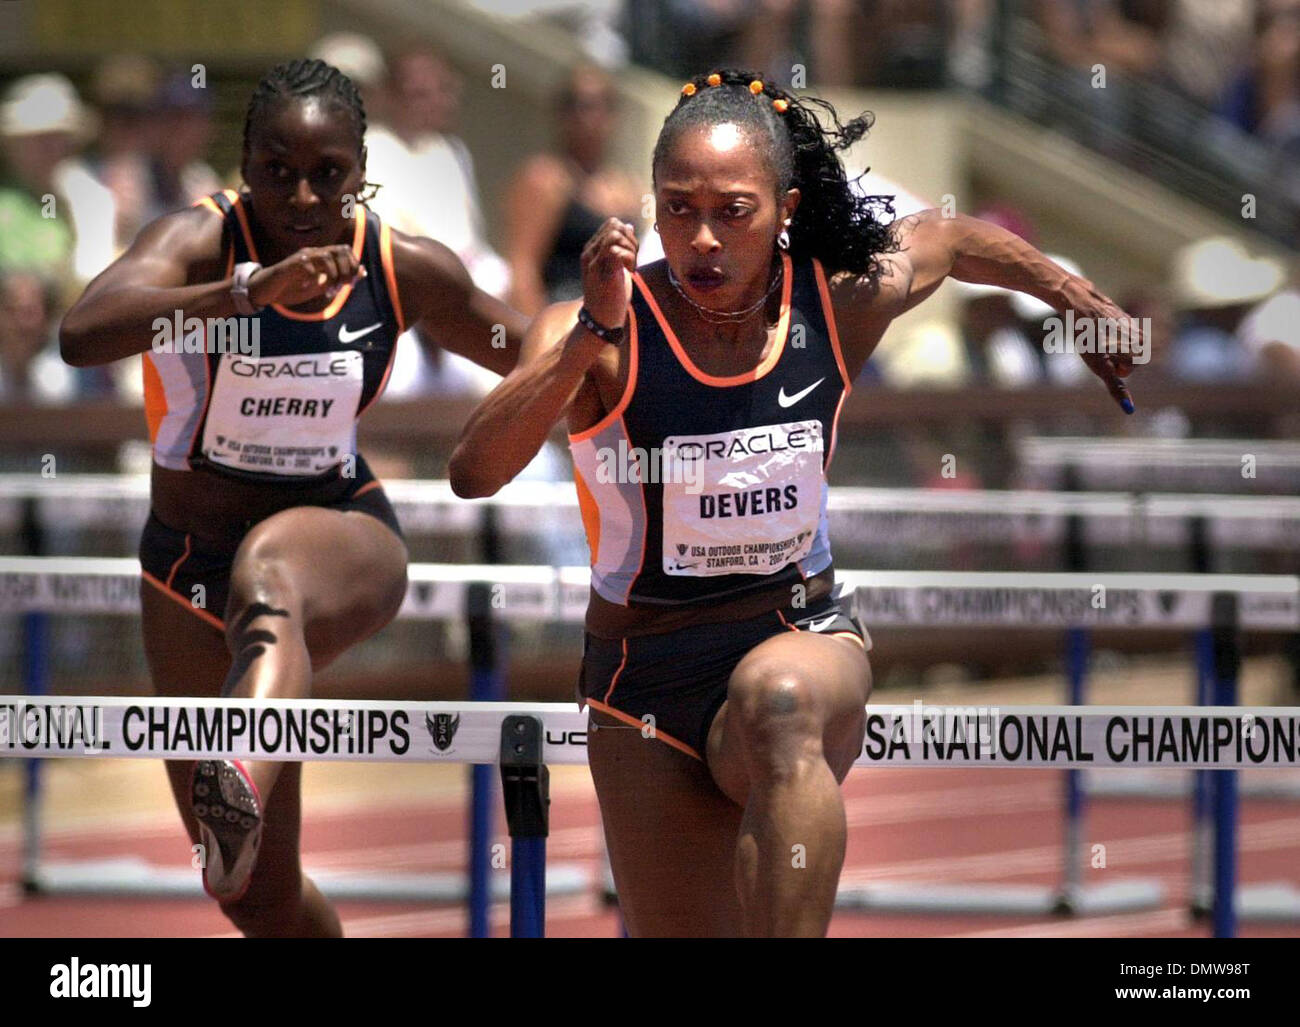 Jun 23, 2002; Palo Alto, CA, USA; 100 meter hurdler Gail Devers easily wins her semi-final heat in the USA Track and Field Championships held at Stanford University in Palo Alto, Calif. on Sunday, June 23, 2002. - Stock Image